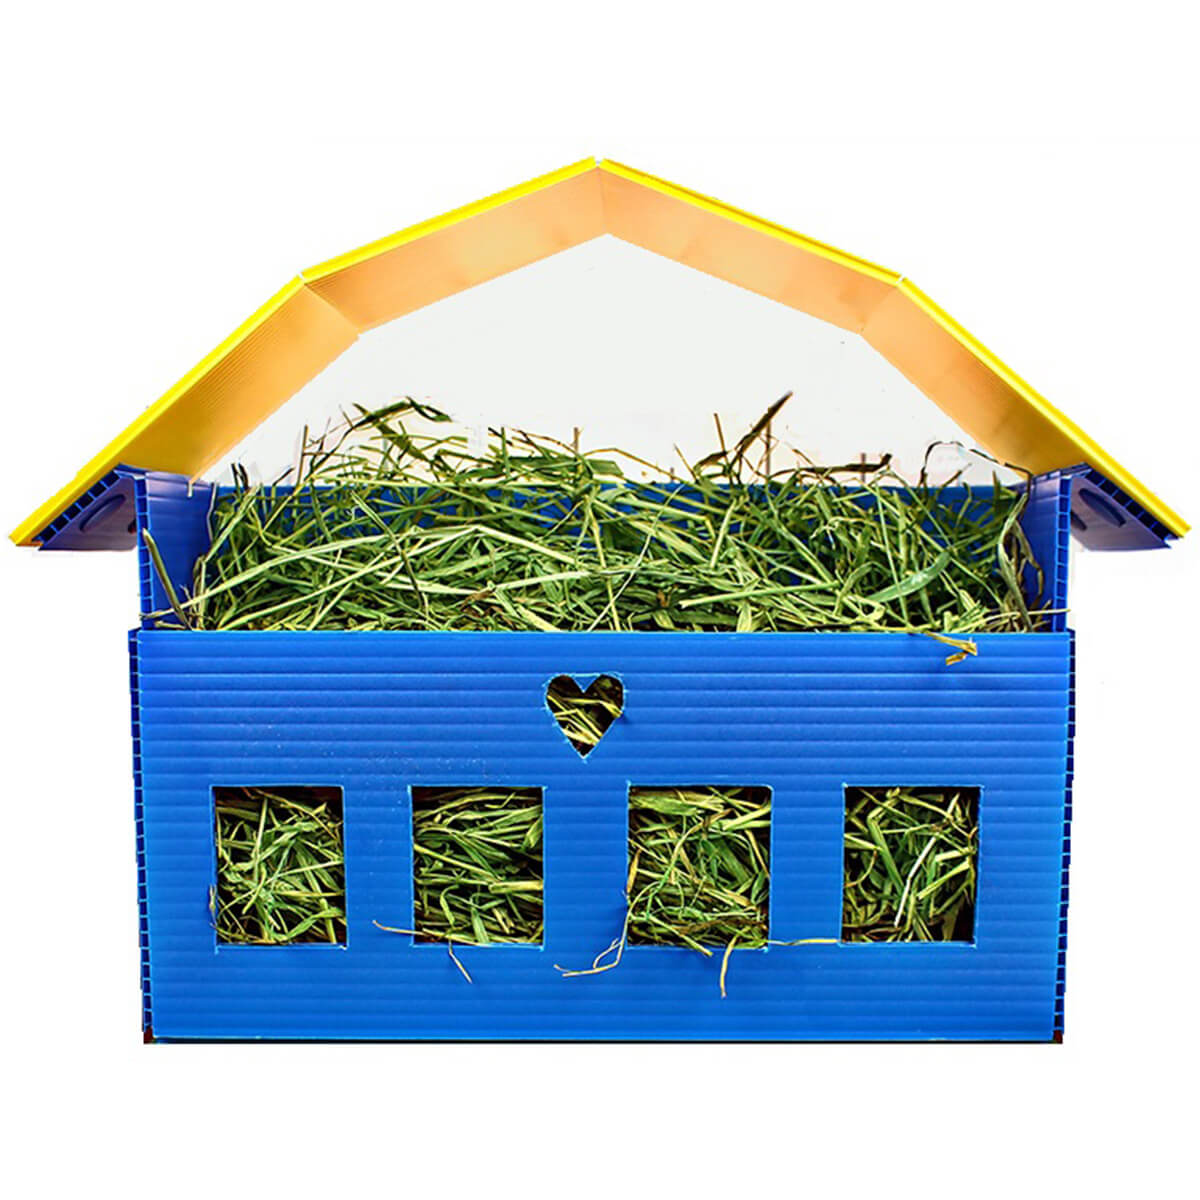 Hay Barn for a pet Guinea Pig Cage - hay rack, hay box, hay container